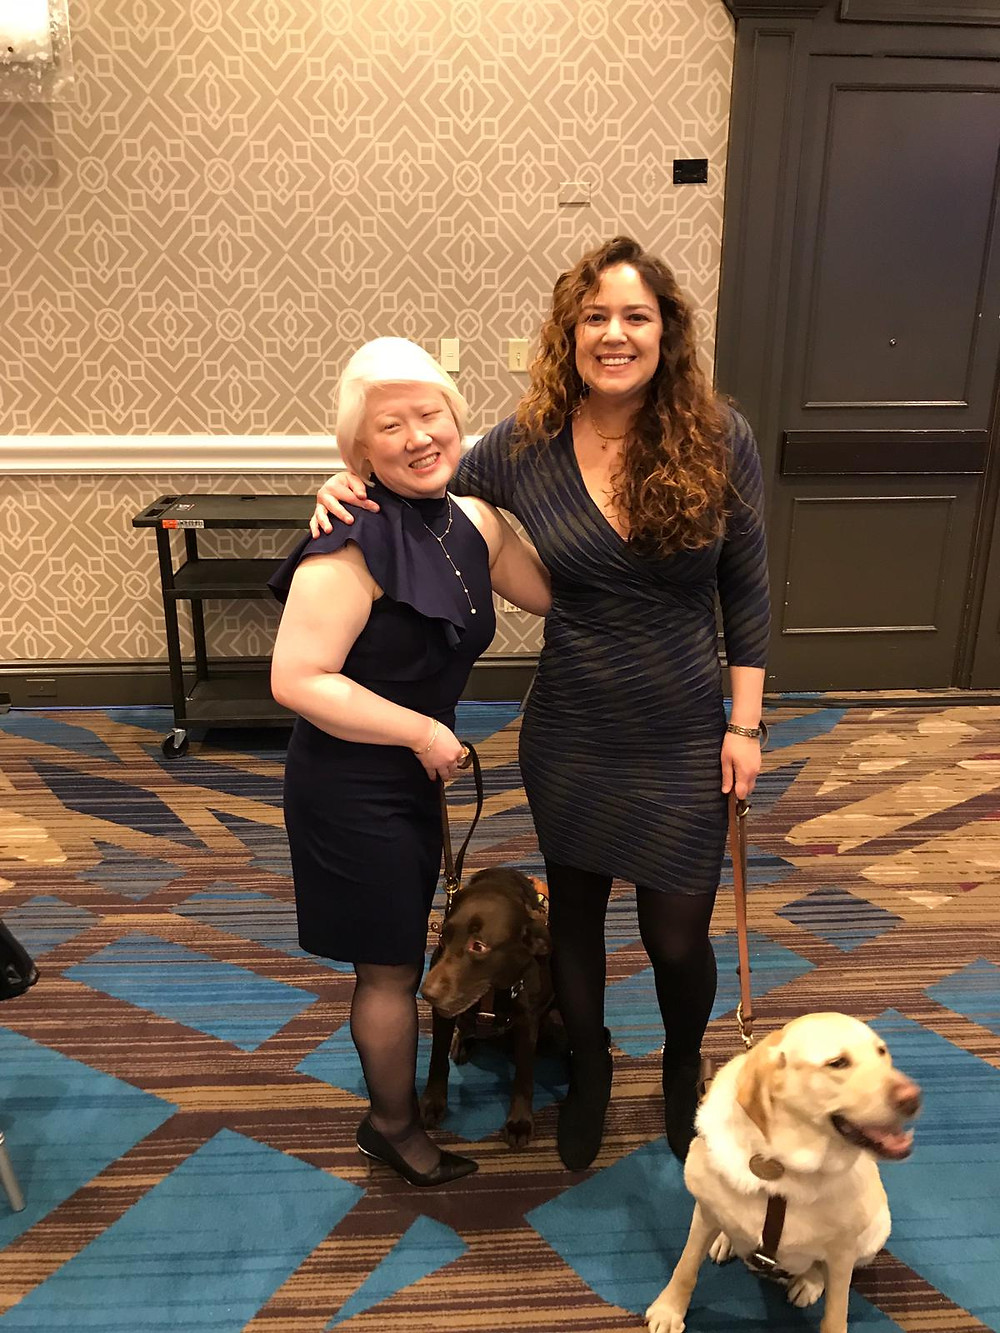 We had a great time at the American Foundation for the Blind's Helen Keller Achievement Award dinner before the start of the AFB conference. Kristin and Zoe are standing next to Dr. Stephanie Hurst DeLuca and Zoe's bestie, her chocolate lab Seeing Eye Dog Karra. Zoe looks very excited to be at the event!